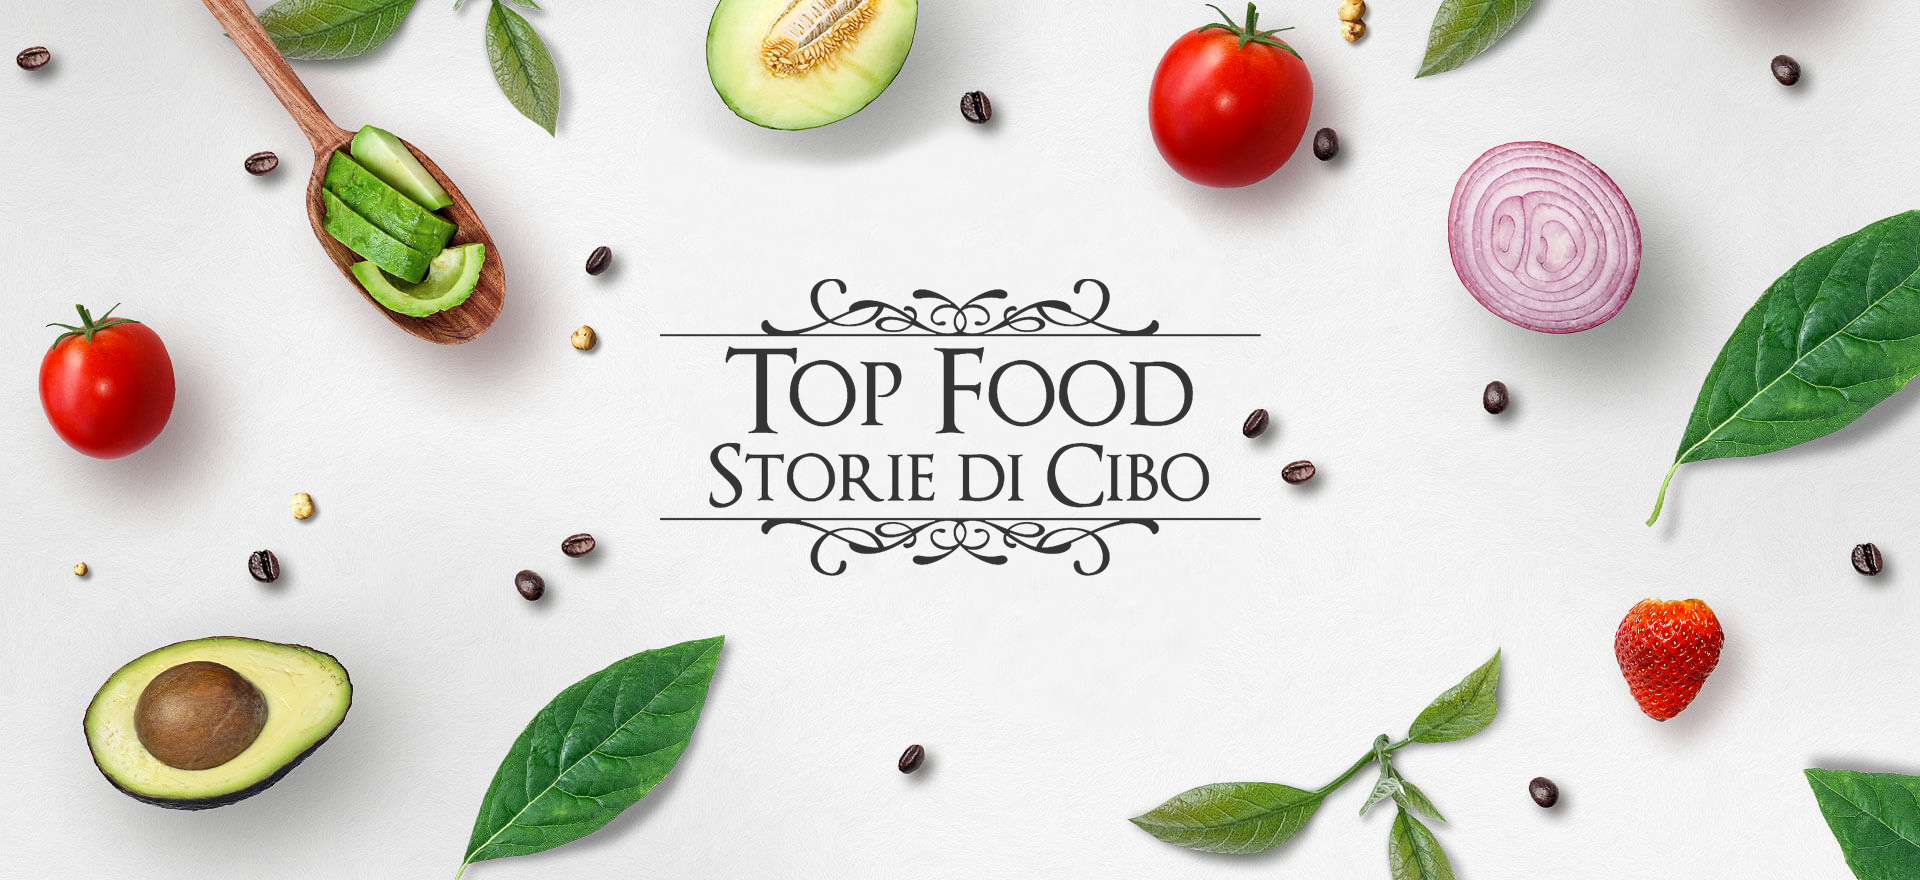 food blogger nadia toppino top food chef michelin cracco marchesi davide oldani